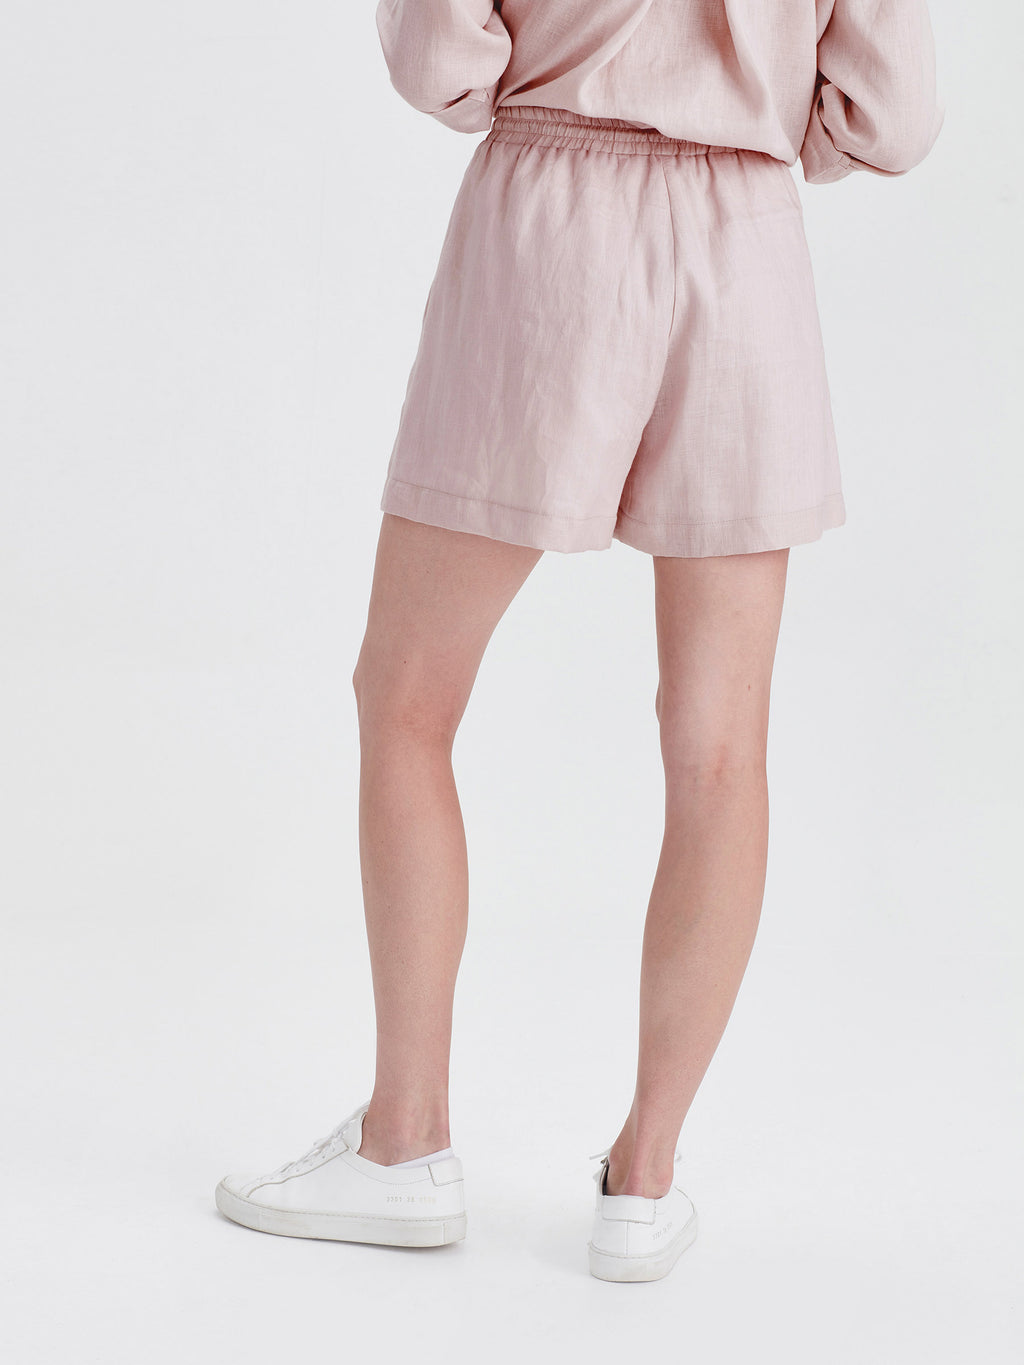 Finch Shorts (Light Linen) Petal